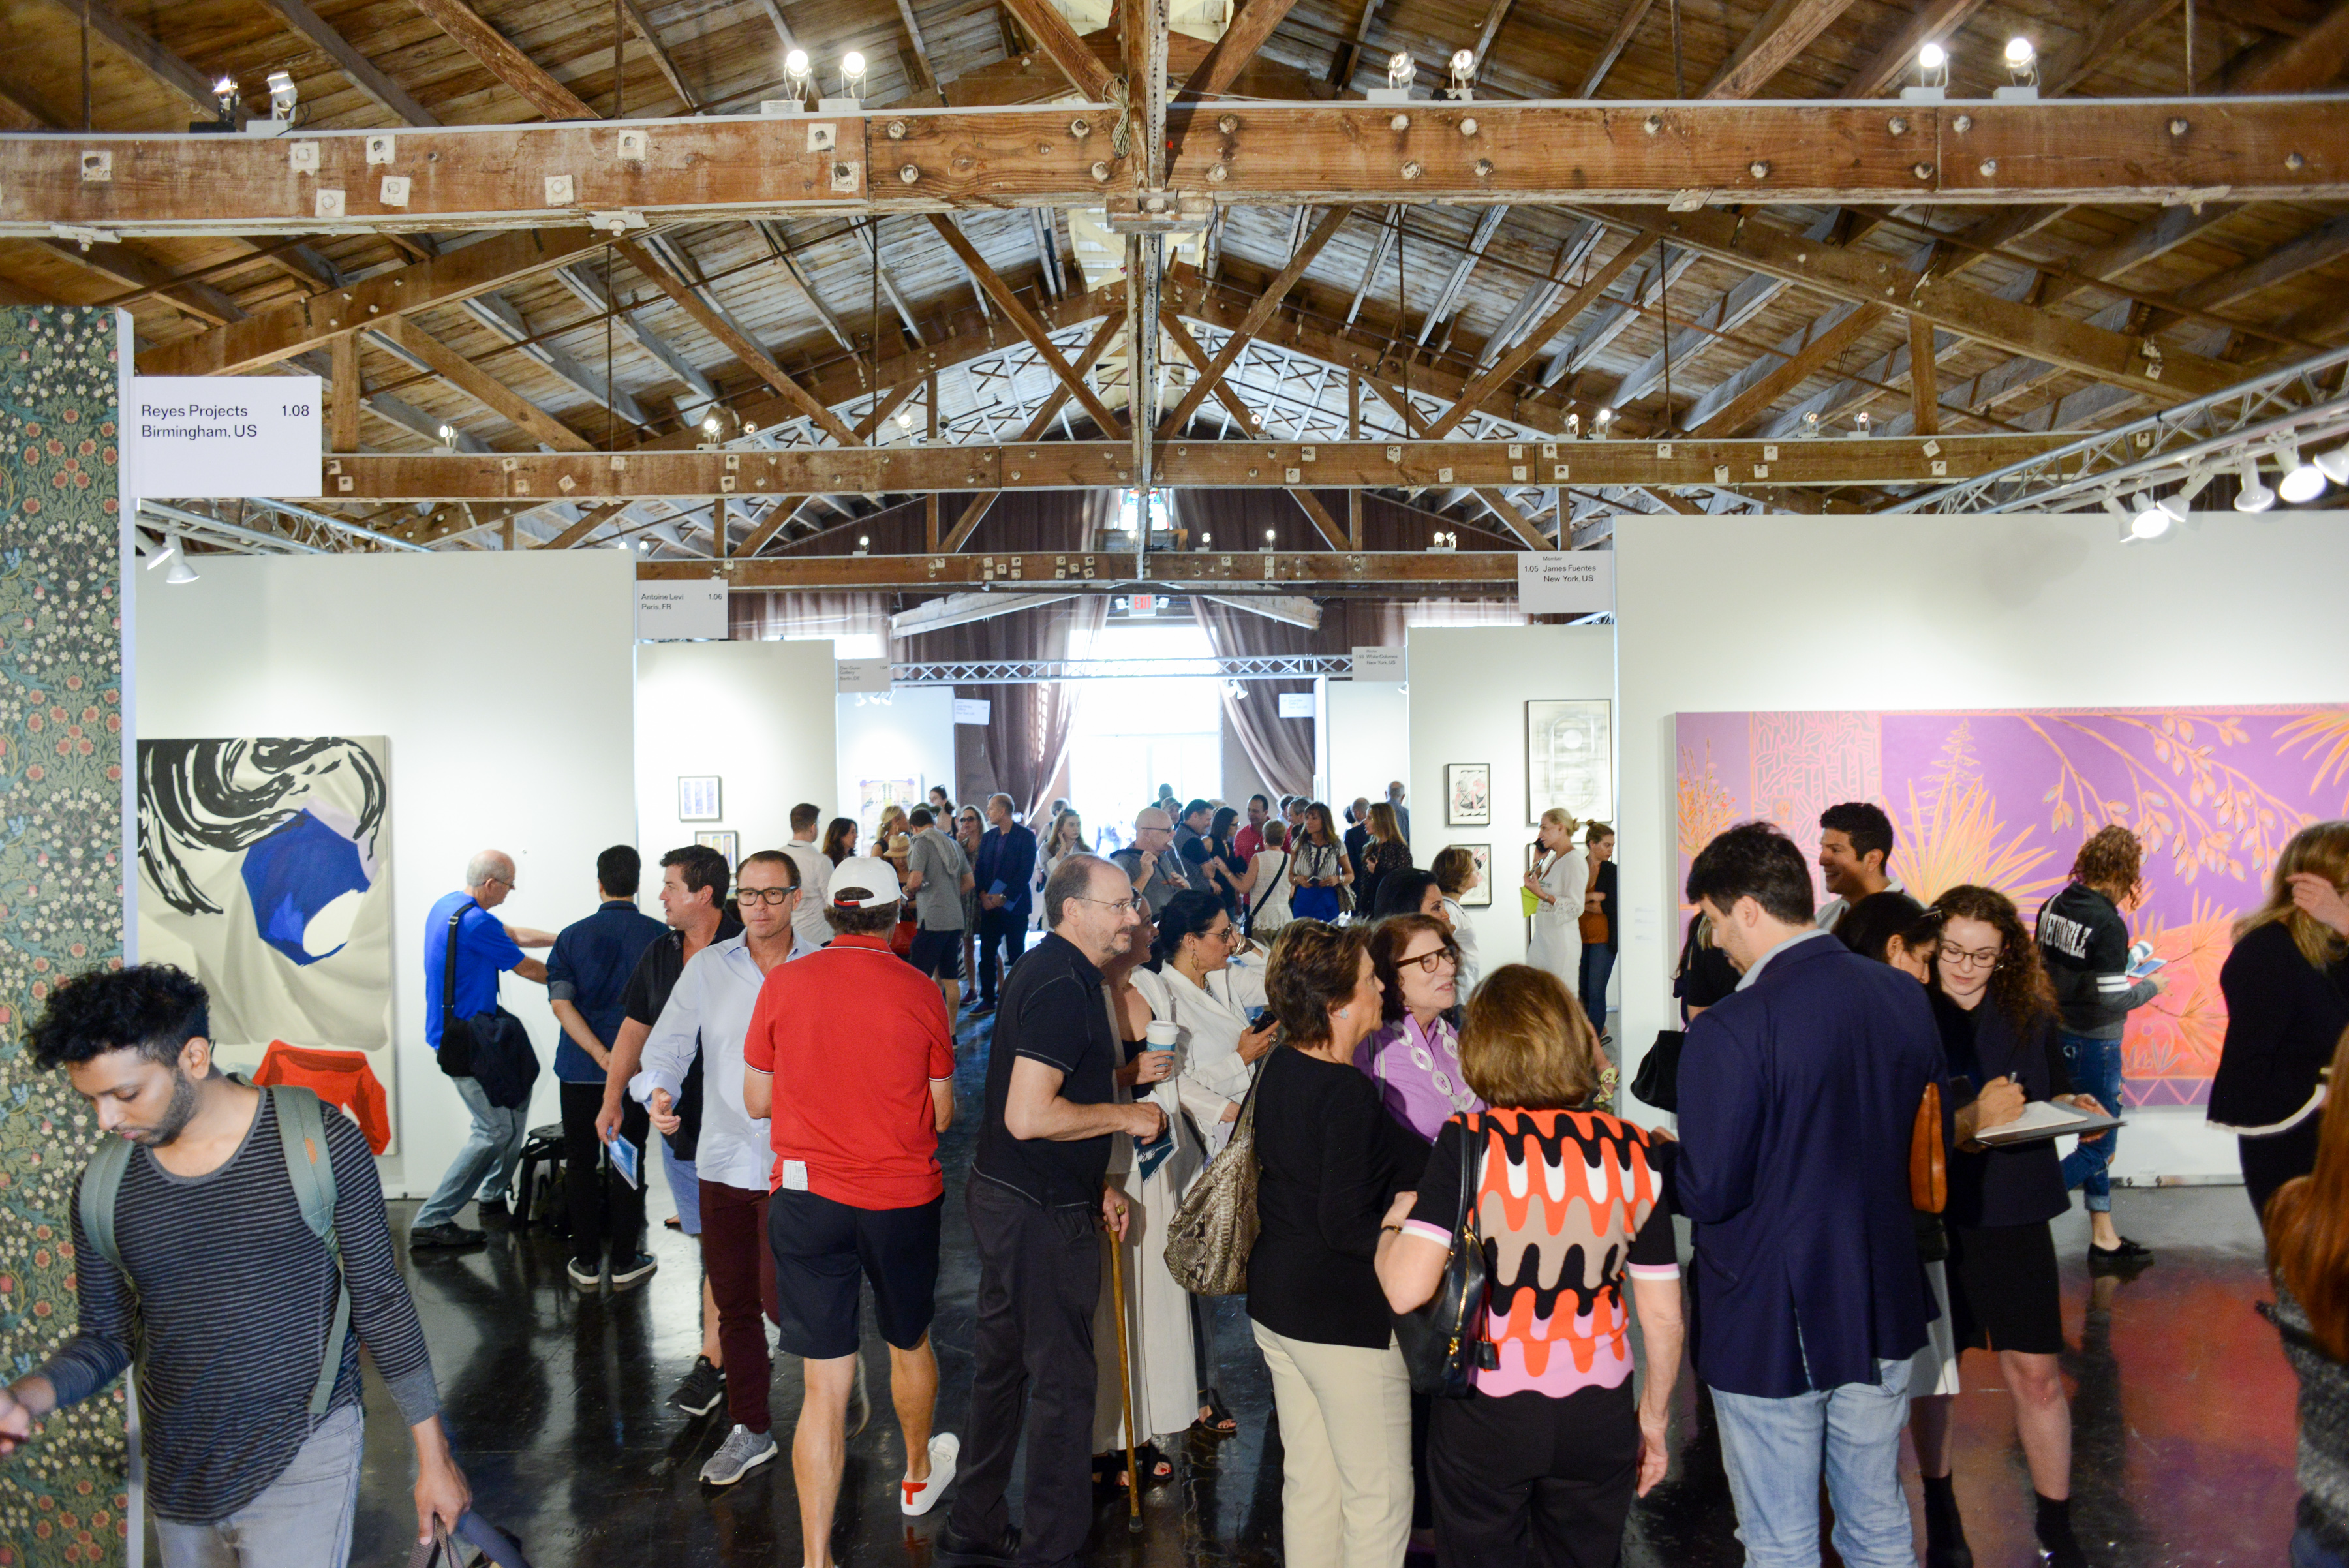 For the 2017 edition of NADA Miami, the art fair returned to its original location, the Ice Palace in Wynwood. Photograph by Casey Kelbaugh